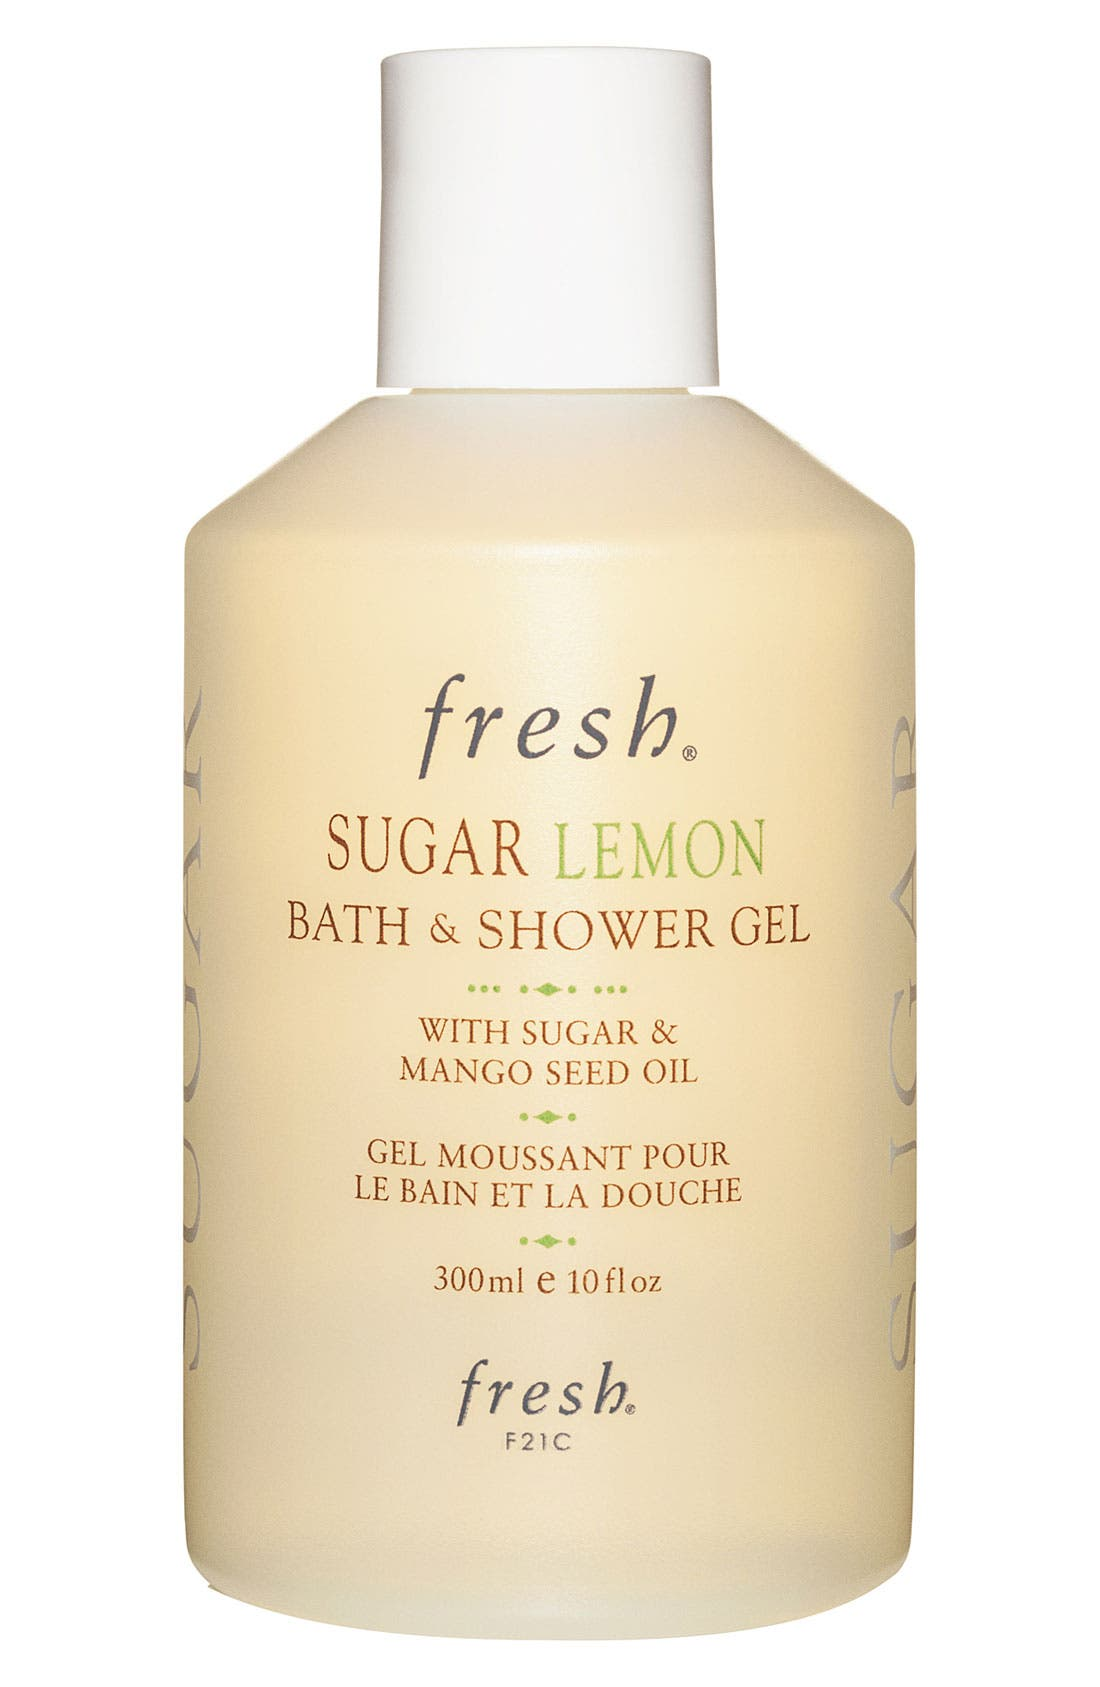 Sugar Lemon Bath & Shower Gel,                             Main thumbnail 1, color,                             NO COLOR